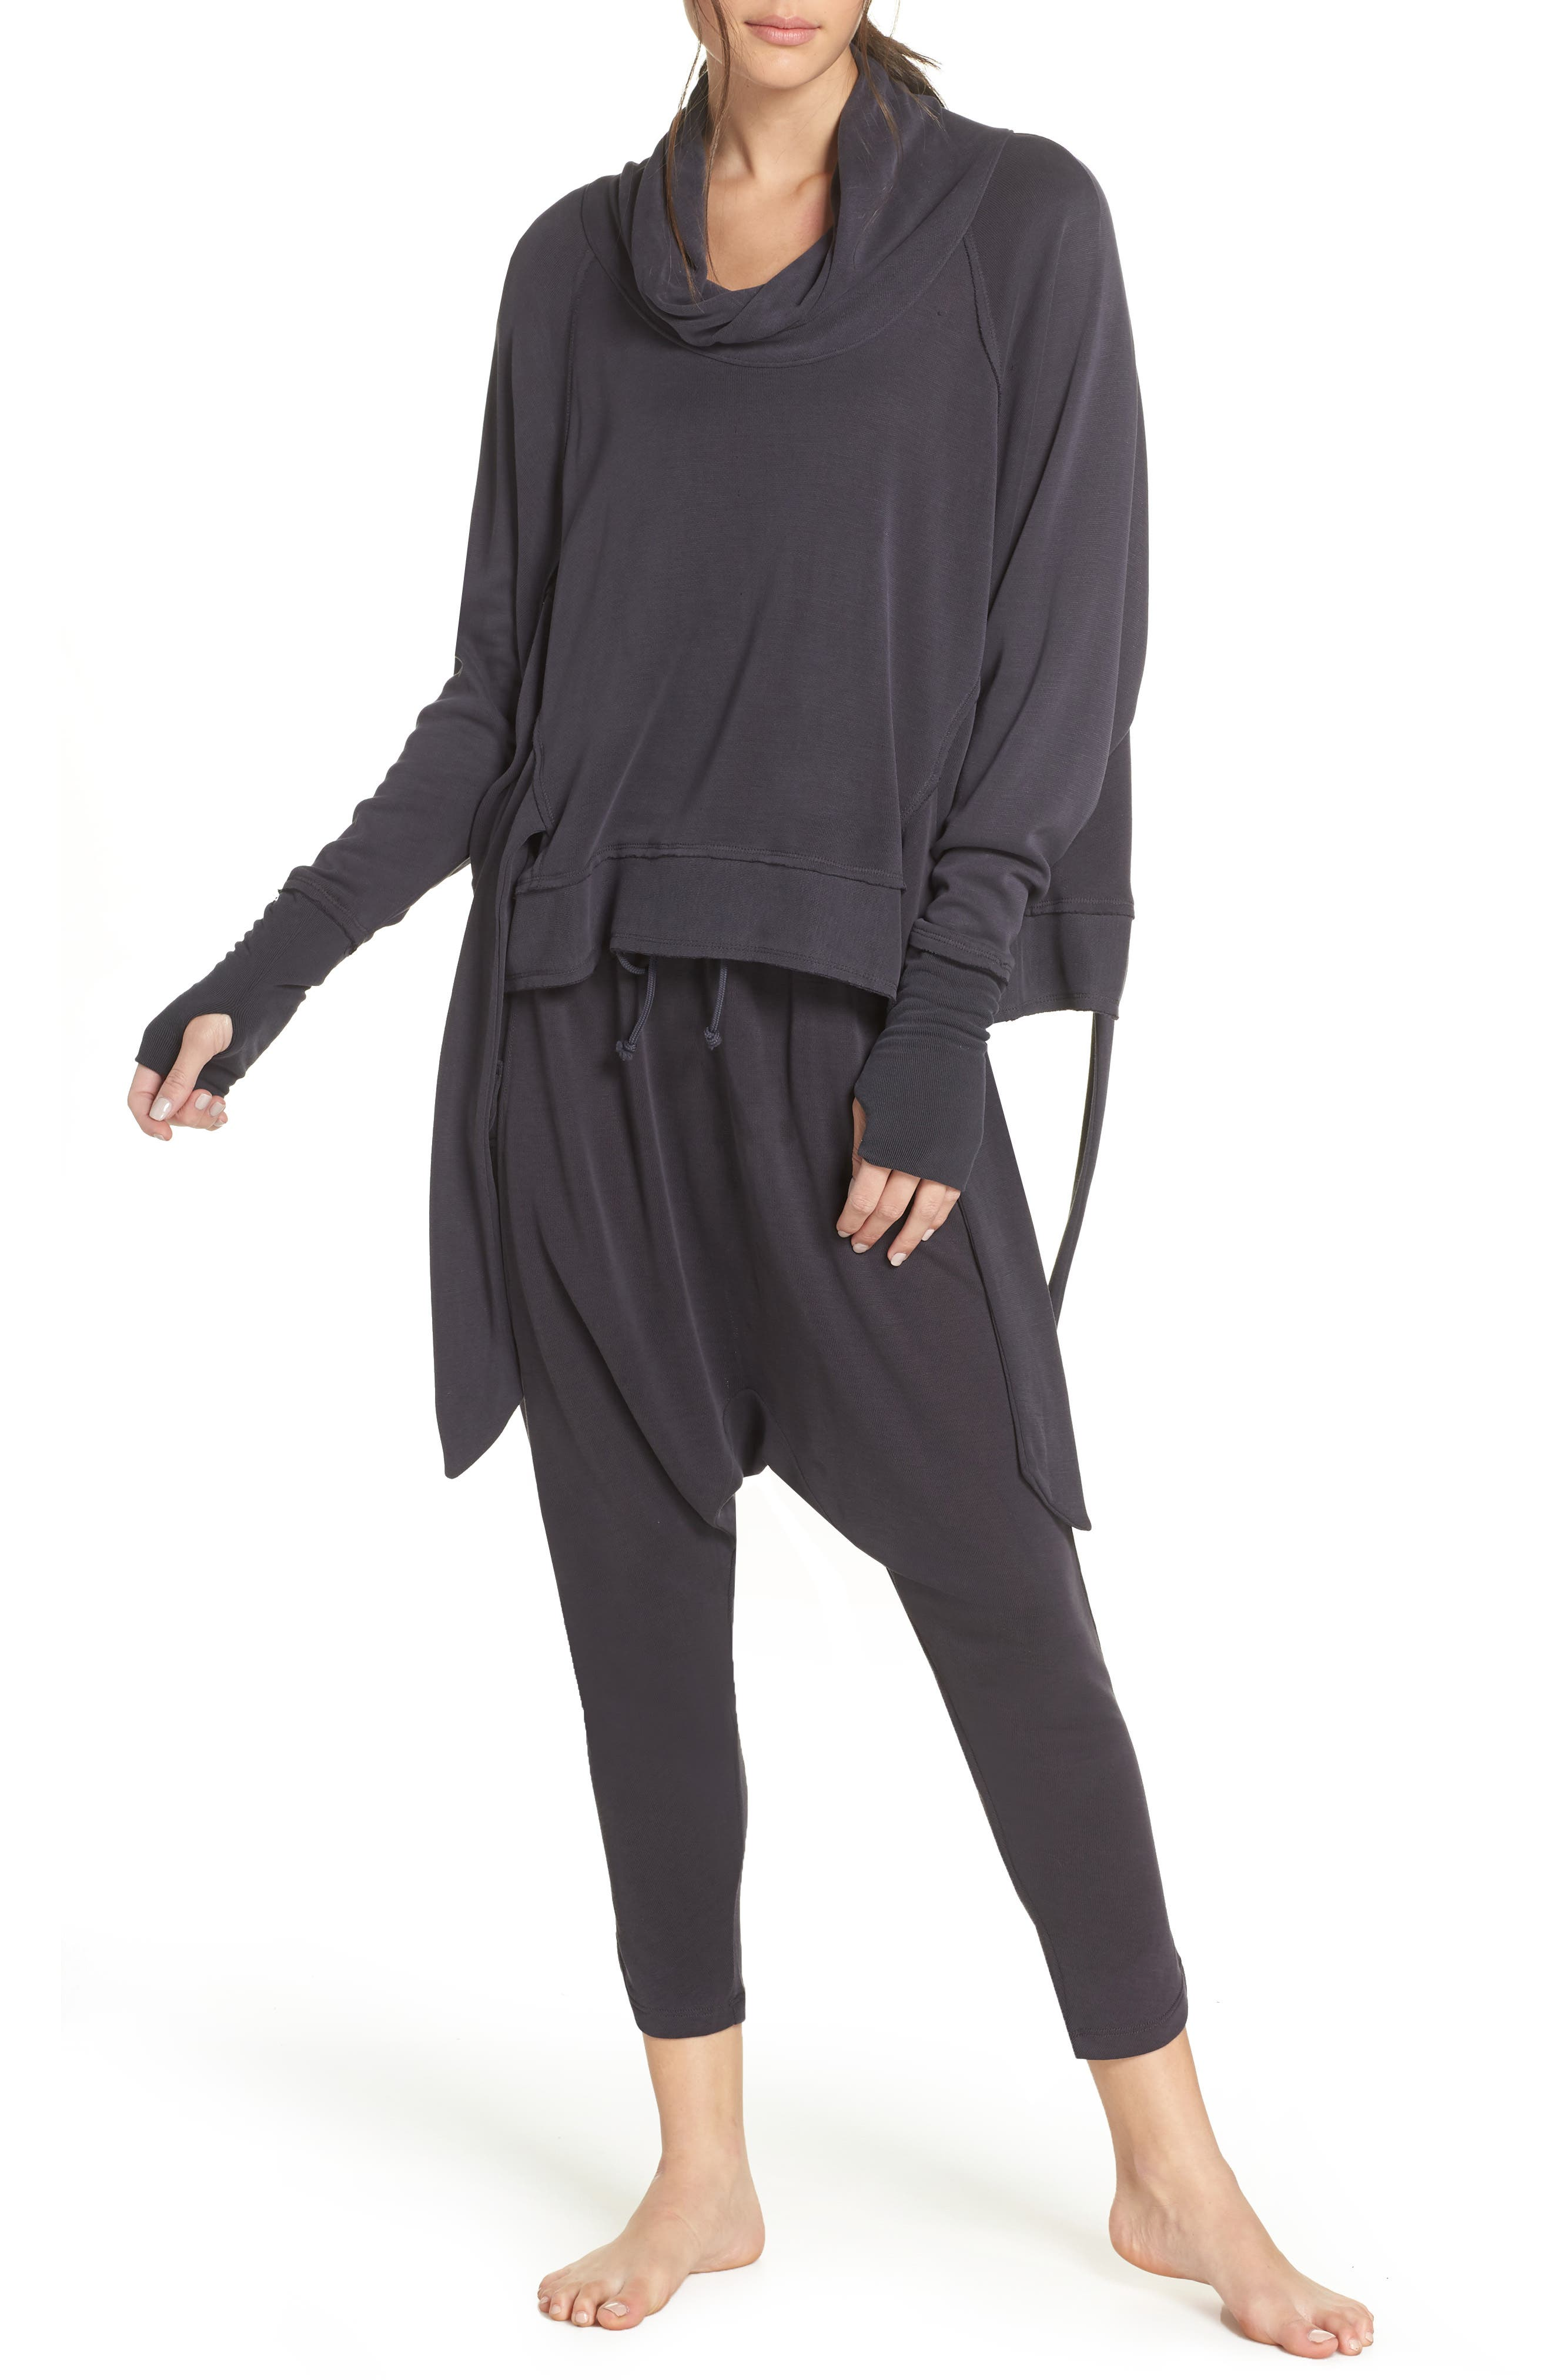 FREE PEOPLE MOVEMENT Free People Fp Movement Sweet Flow Pullover Sweater in Black